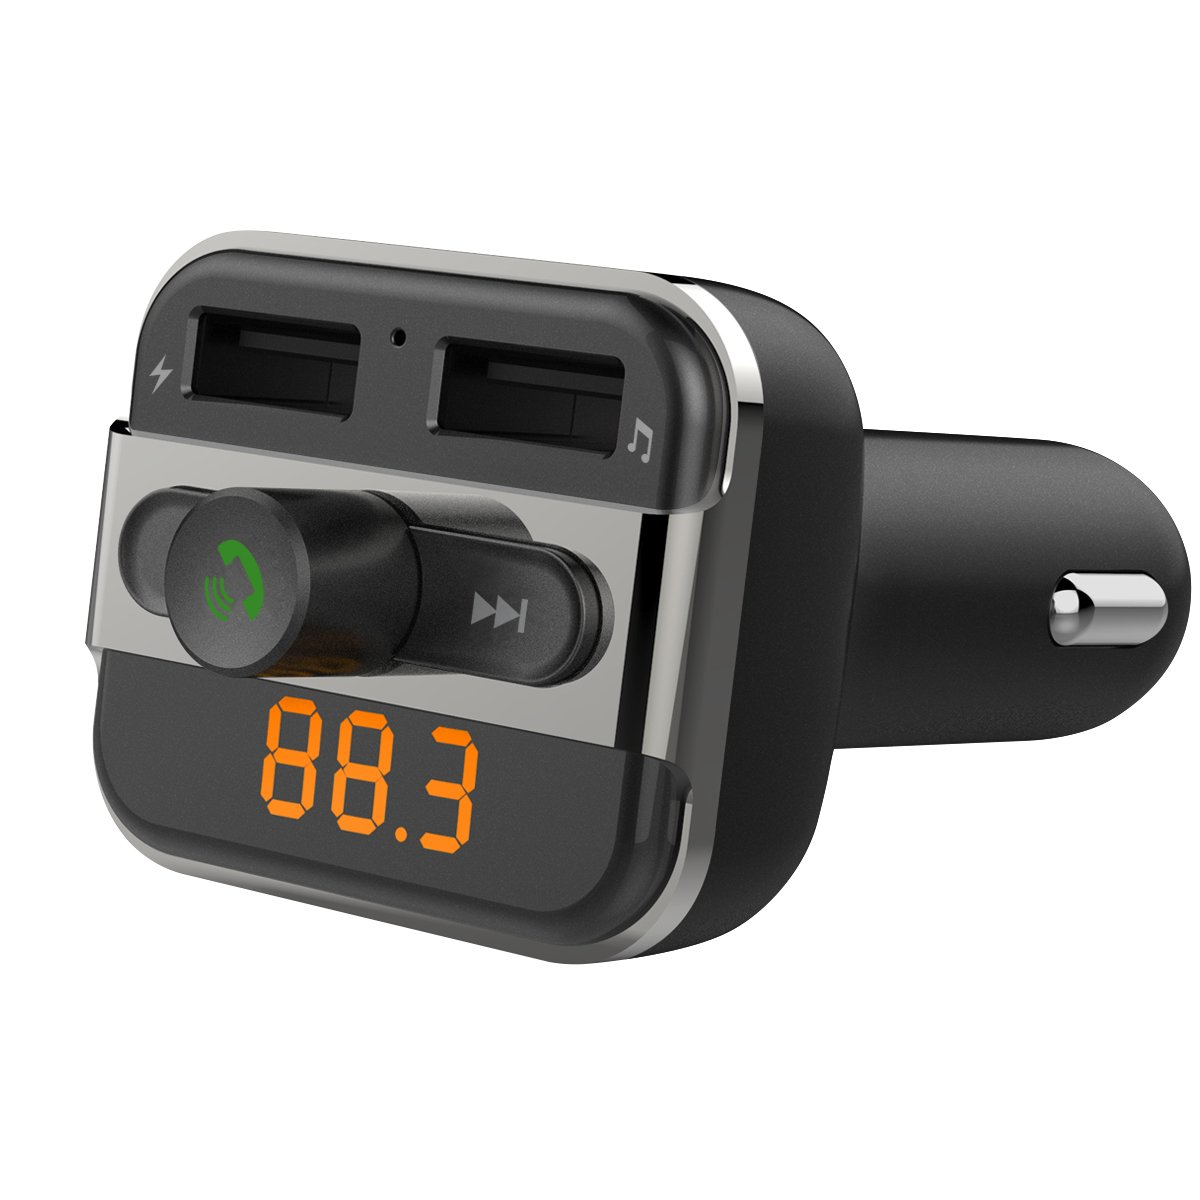 Perbeat BT20 Bluetooth Car FM Transmitter with Dual USB Charging,Music Controls & Hands-Free Calling for Apple iPhone 7, 6, 5, iPad, iPod, Samsung,LG,MP3 Players.Supports USB/Micro SD Card Black PBBT20black